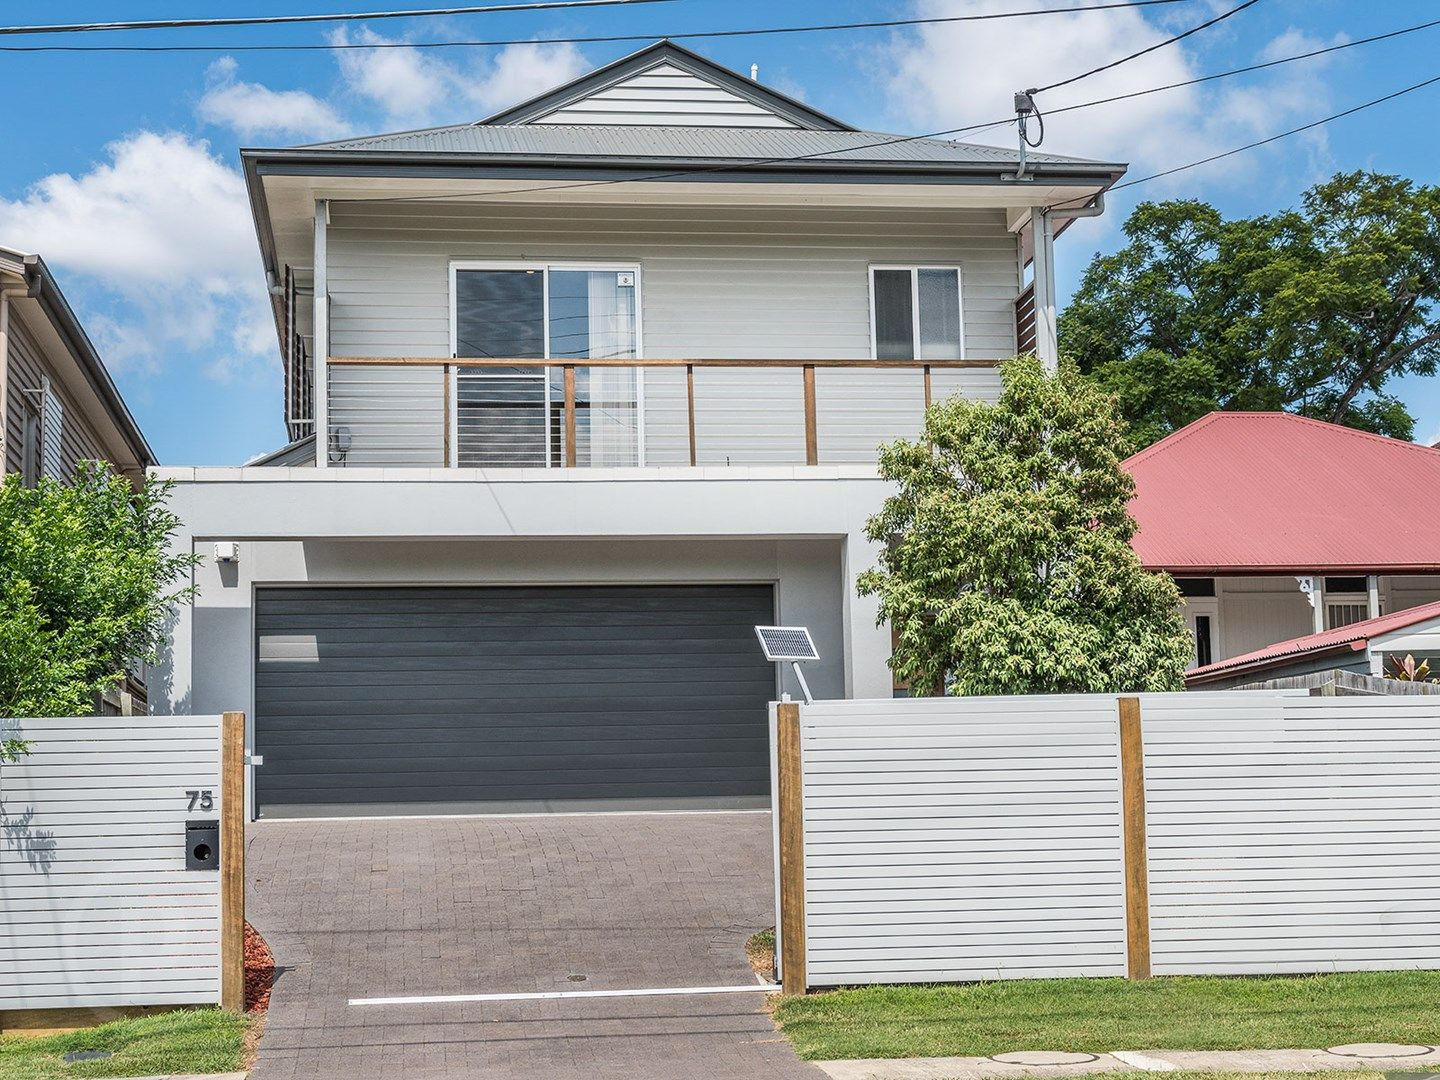 75 Hipwood Street, Norman Park QLD 4170, Image 2